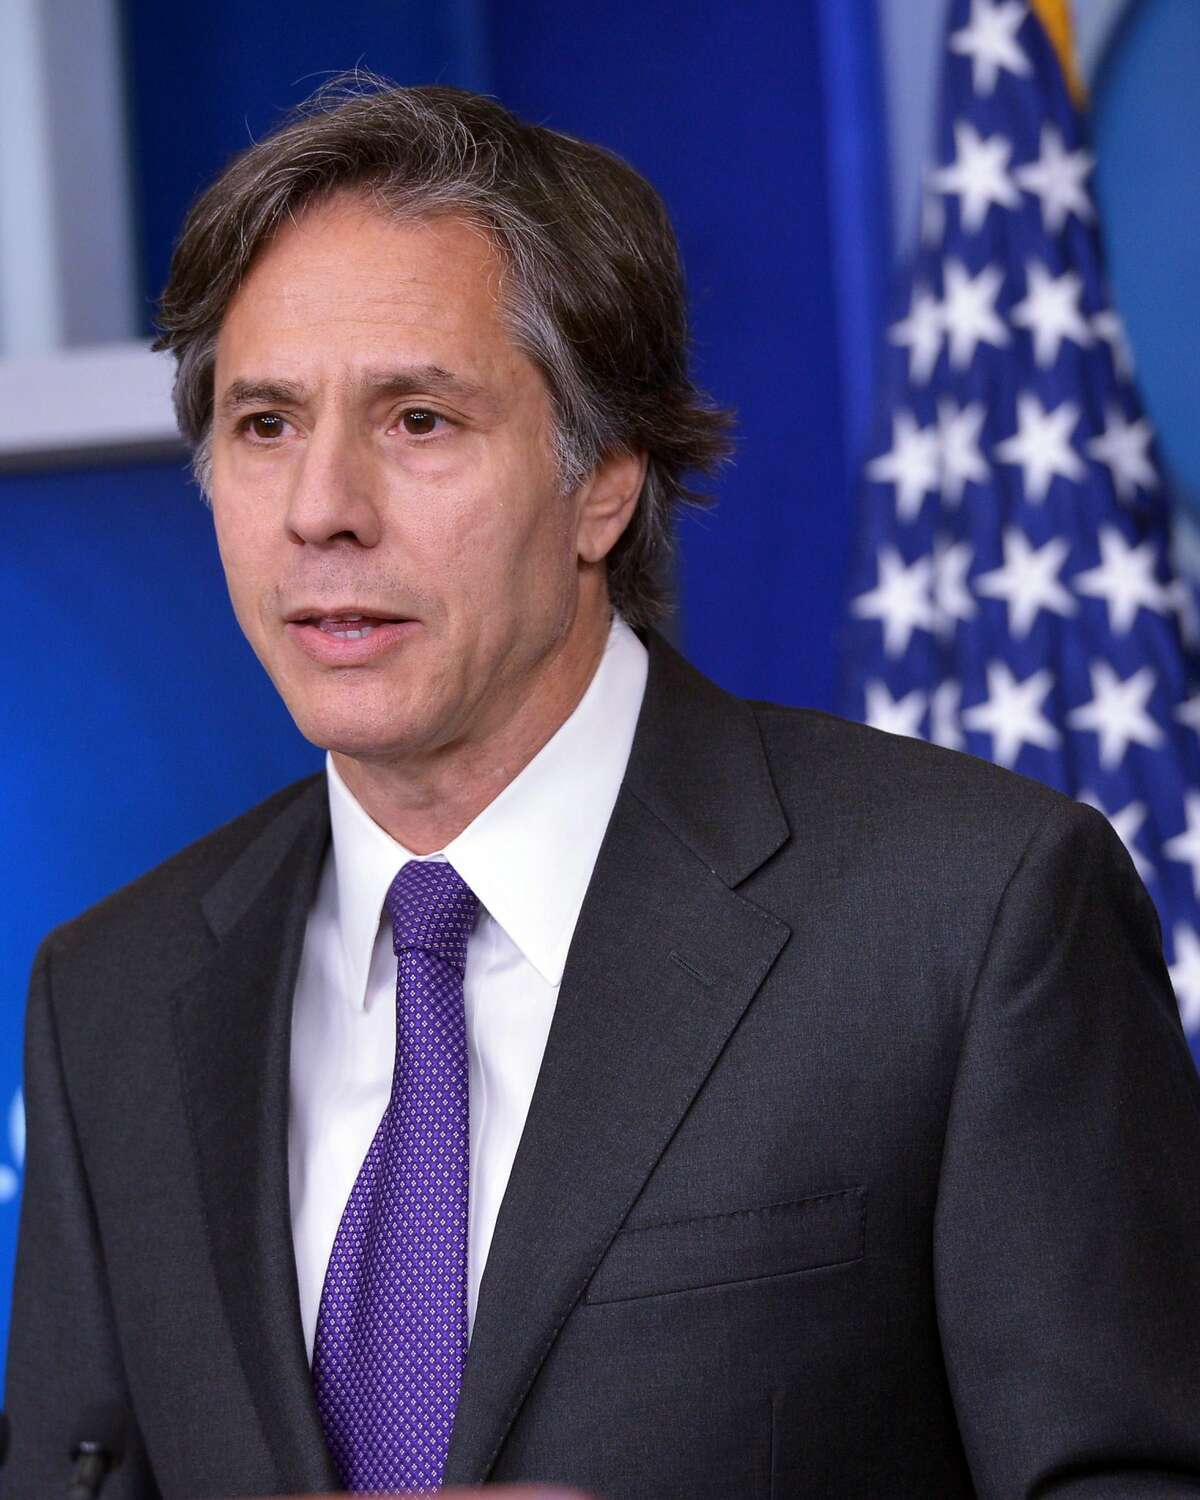 Deputy National Security Advisor Tony Blinken speaks during the daily briefing in the Brady Briefing Room of the White House on July 28, 2014 in Washington, DC. AFP PHOTO/Mandel NGANMANDEL NGAN/AFP/Getty Images